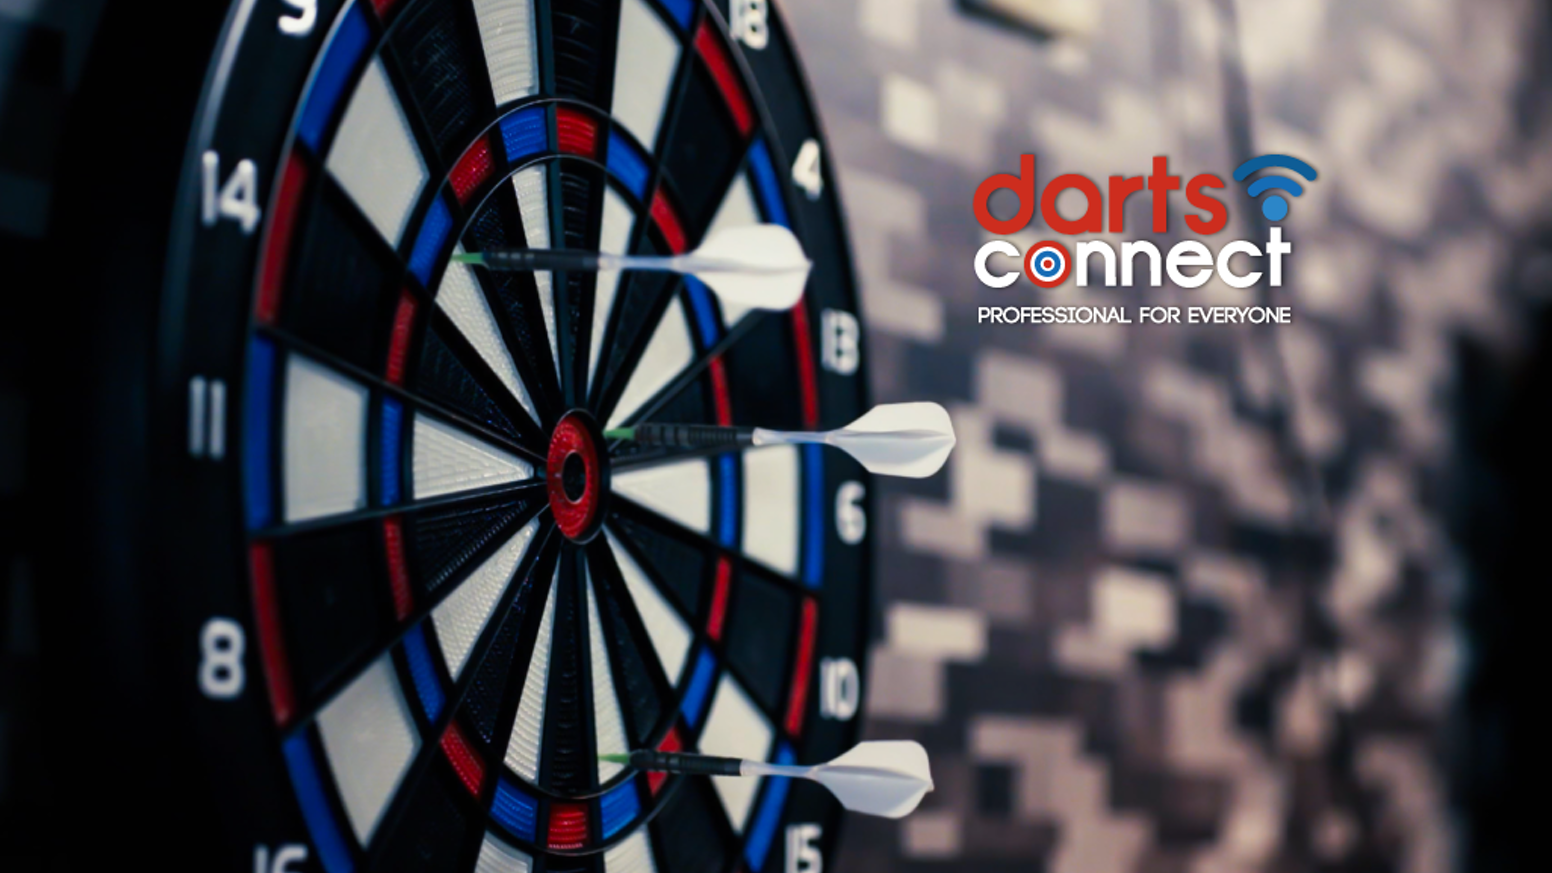 Darts Connect is the revolution. Start playing darts with your friends and players globally anytime, anywhere.